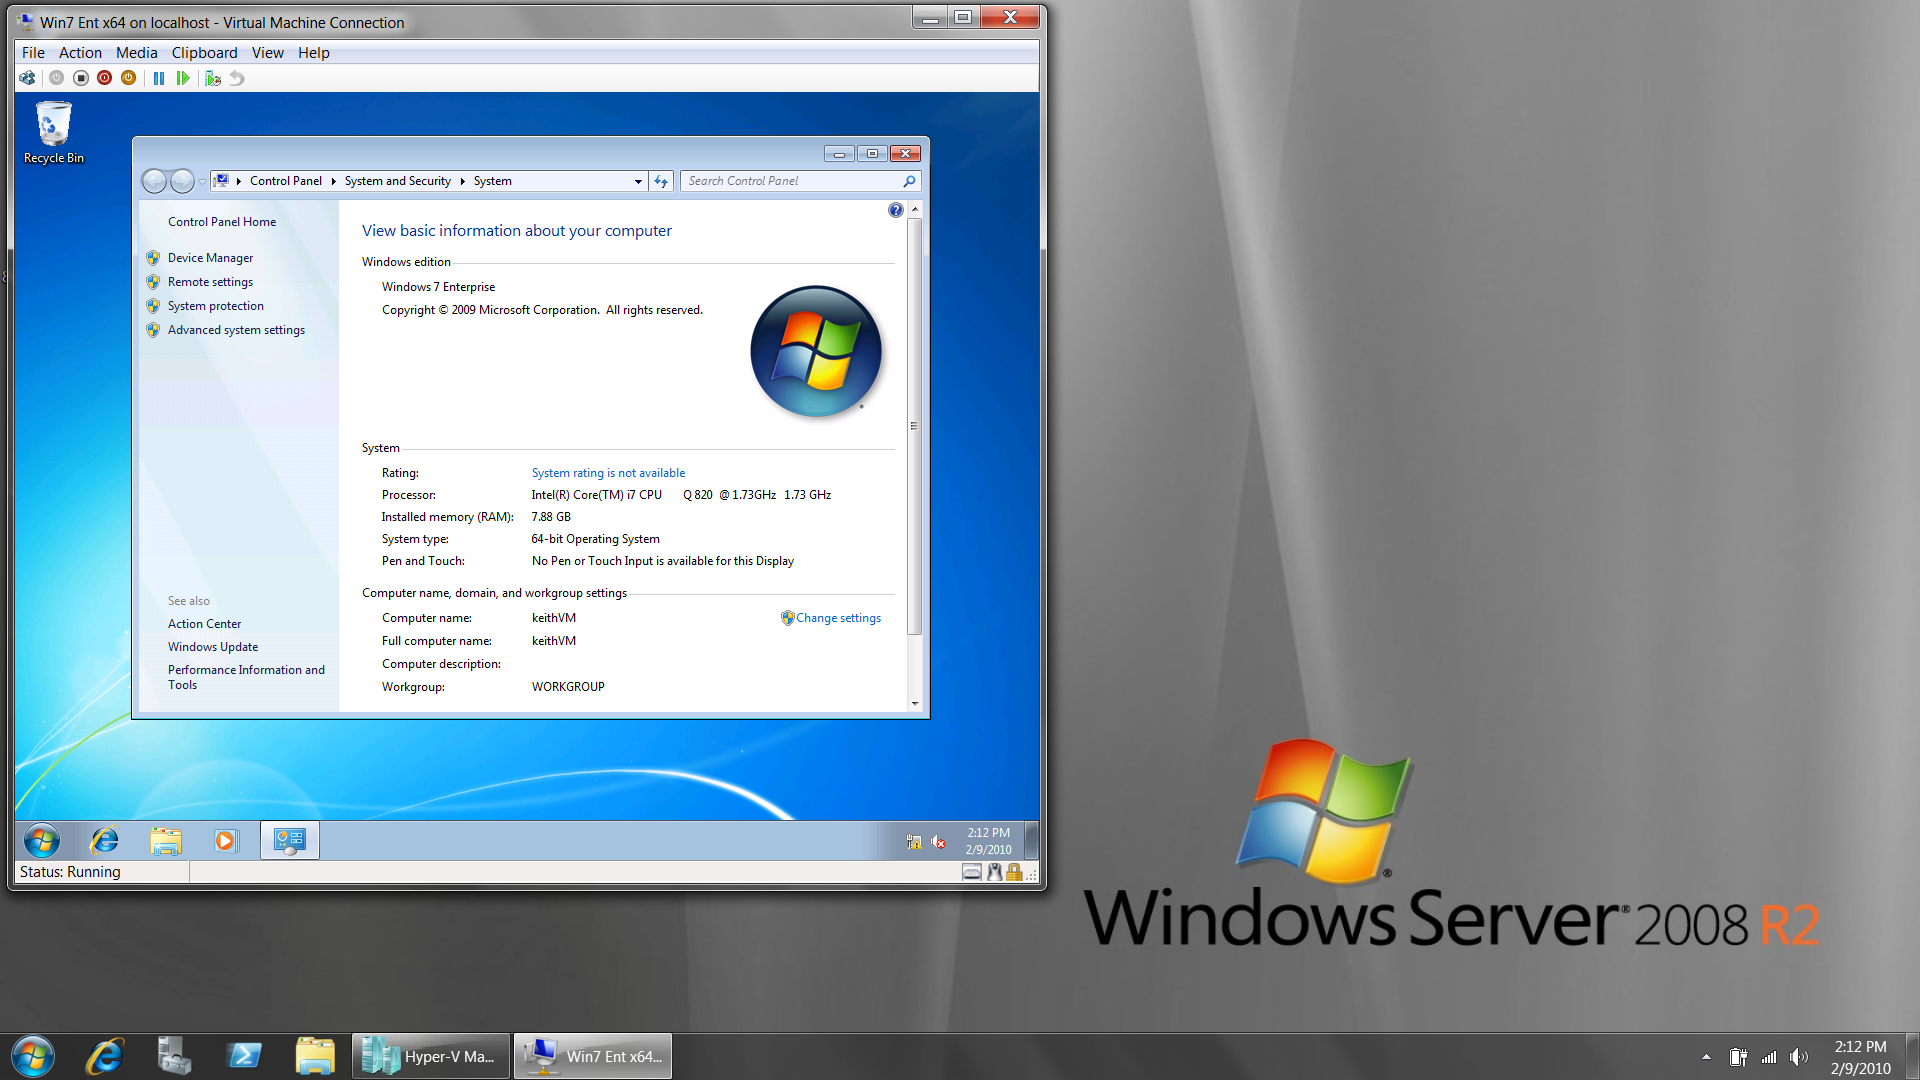 Windows Server 2008 R2 desktop screen